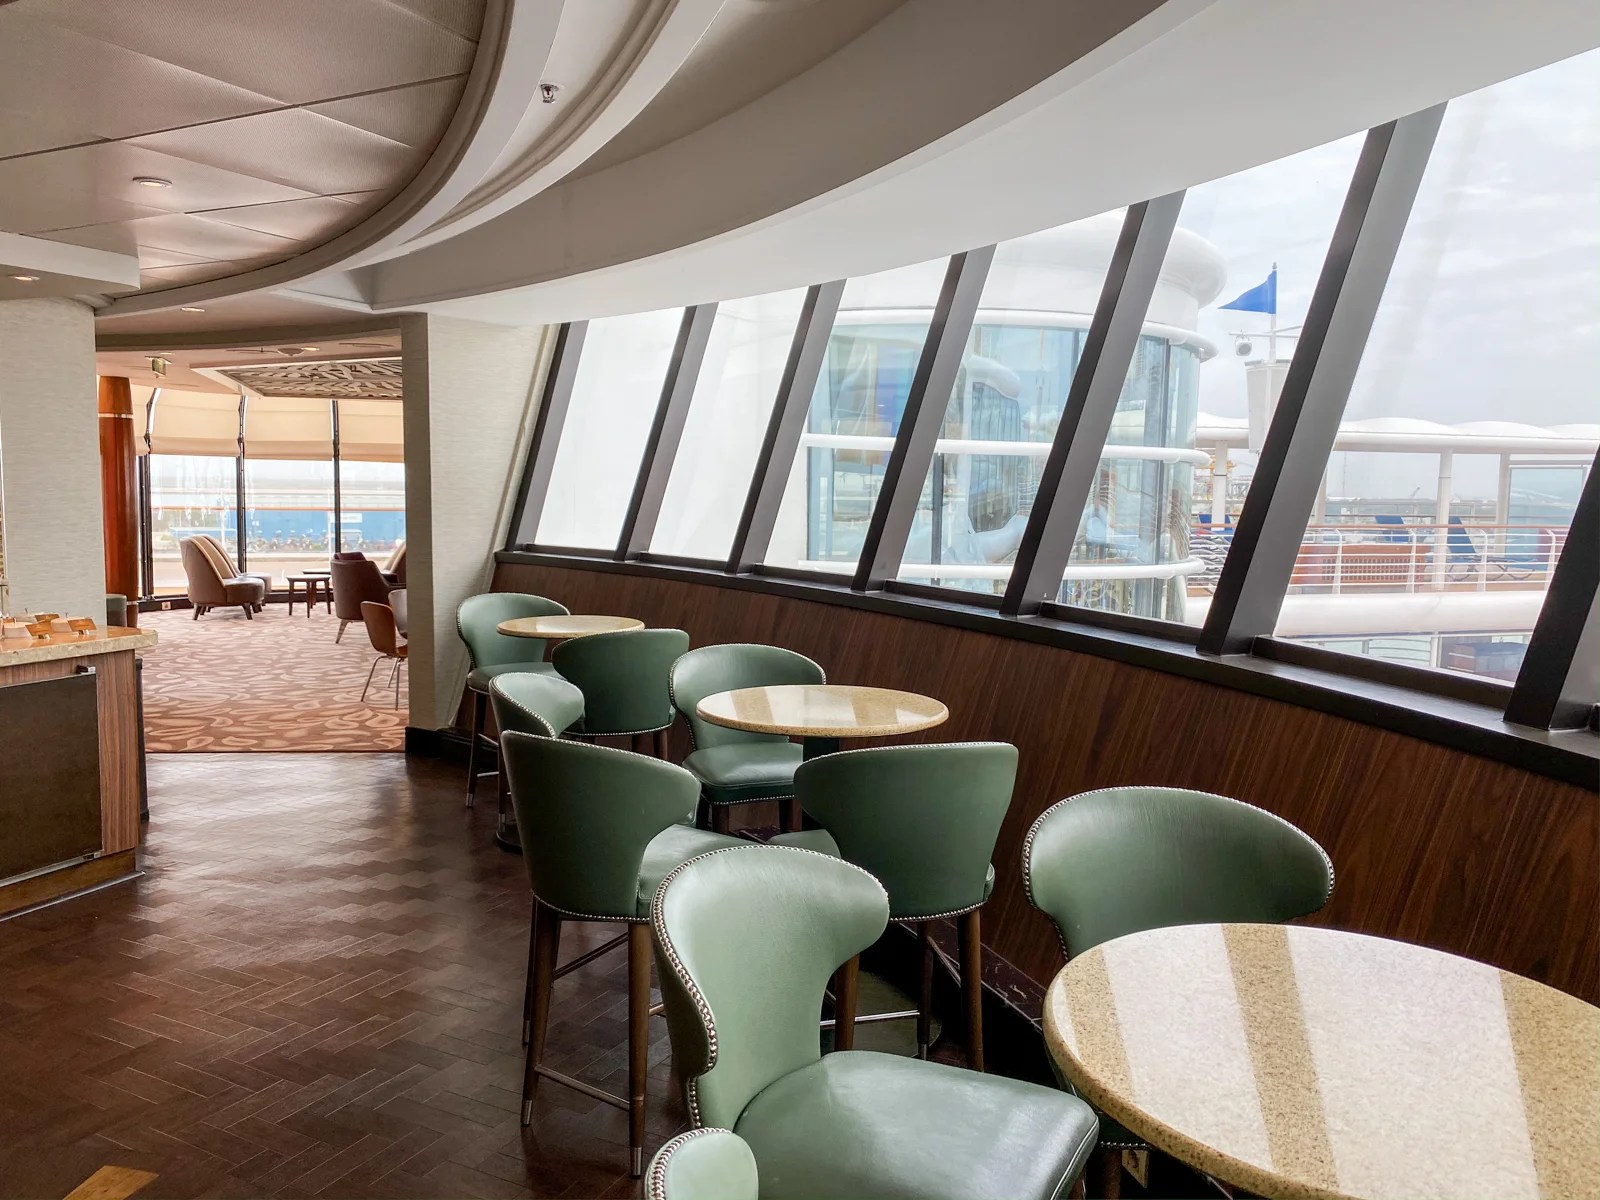 Disney Wonder concierge lounge (Photo by Summer Hull/The Points Guy)